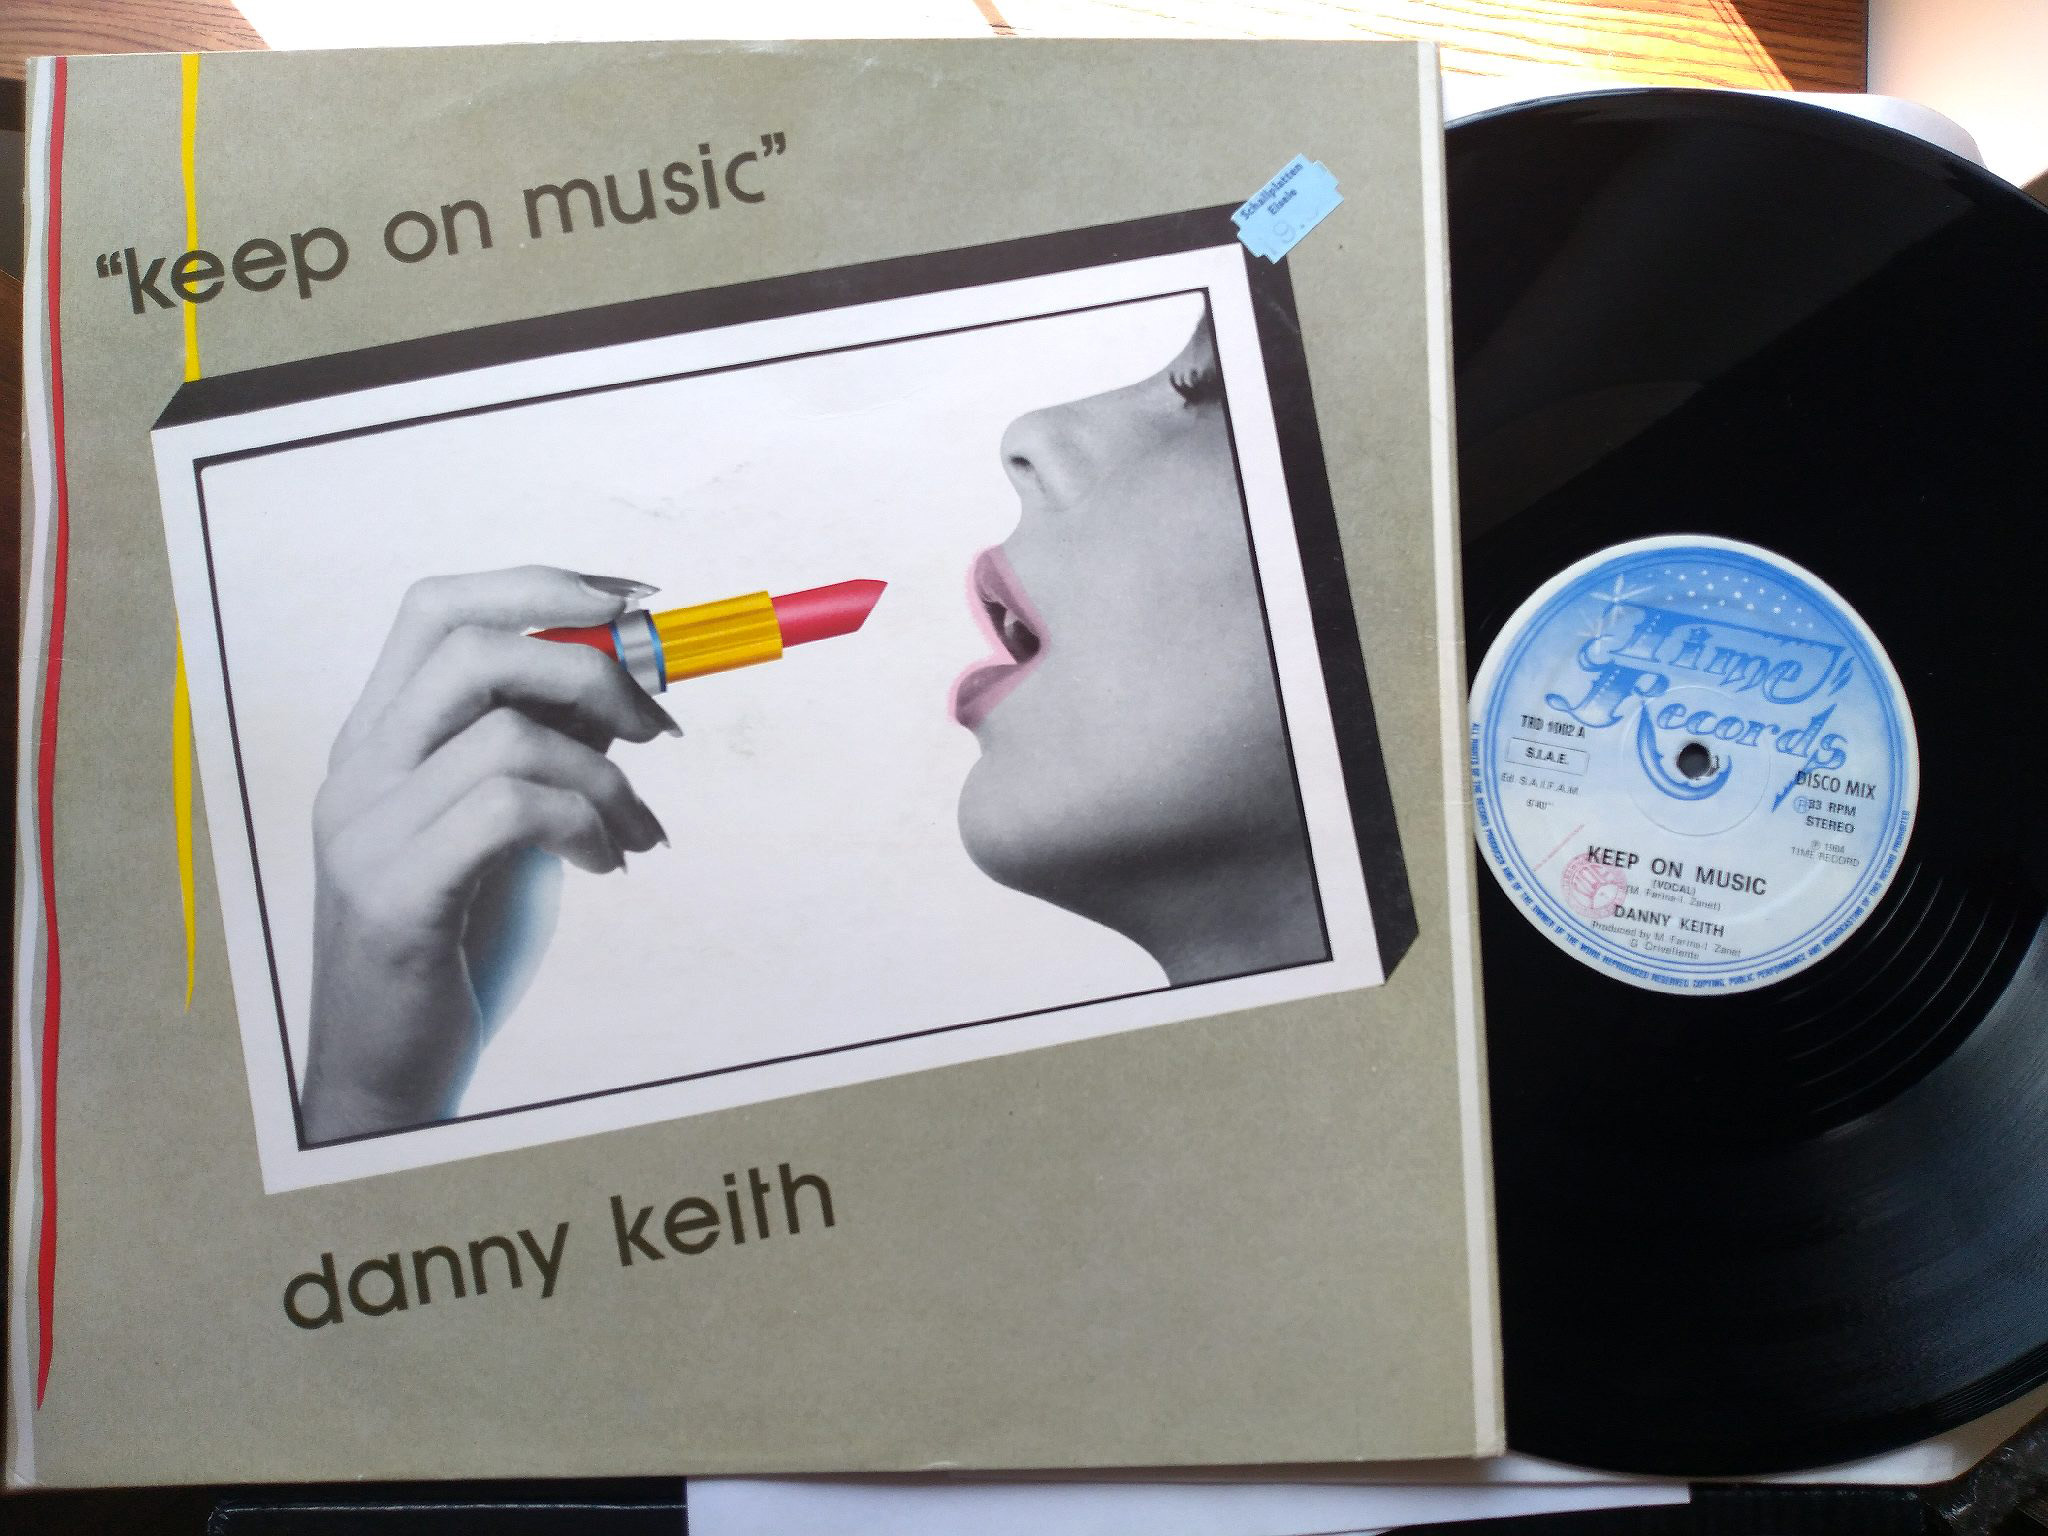 Danny Keith - Keep on music